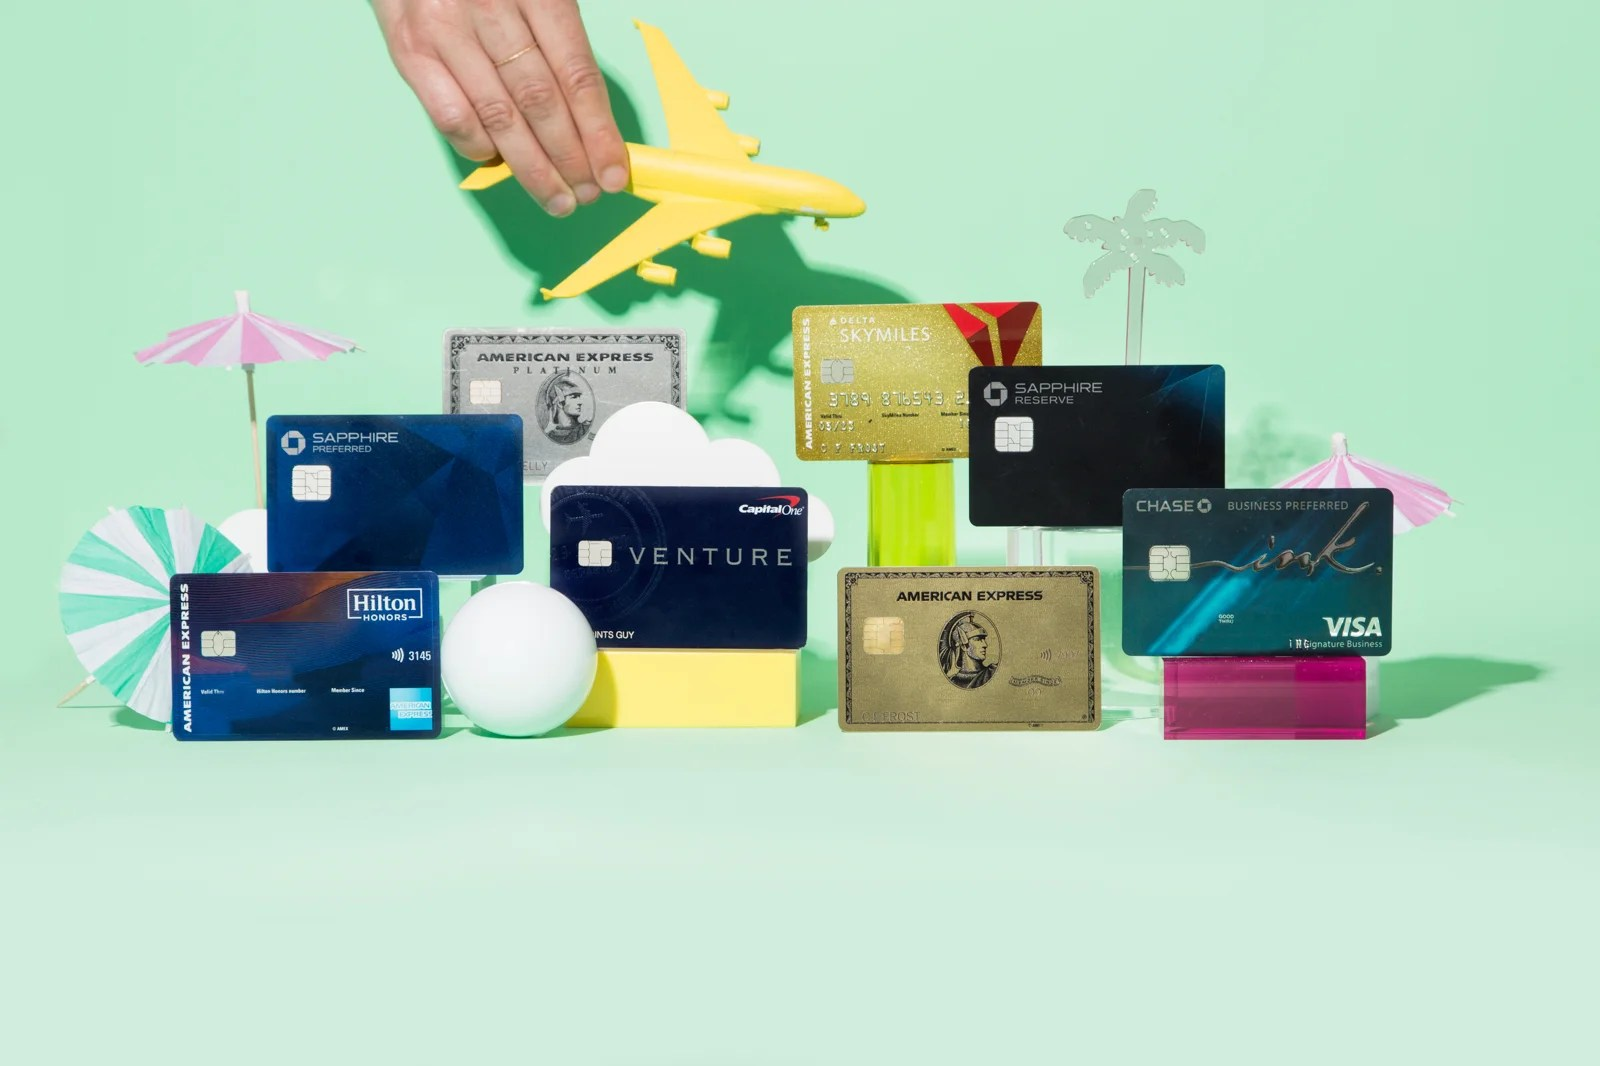 Best Travel Rewards Credit Cards of 2019 - The Points Guy